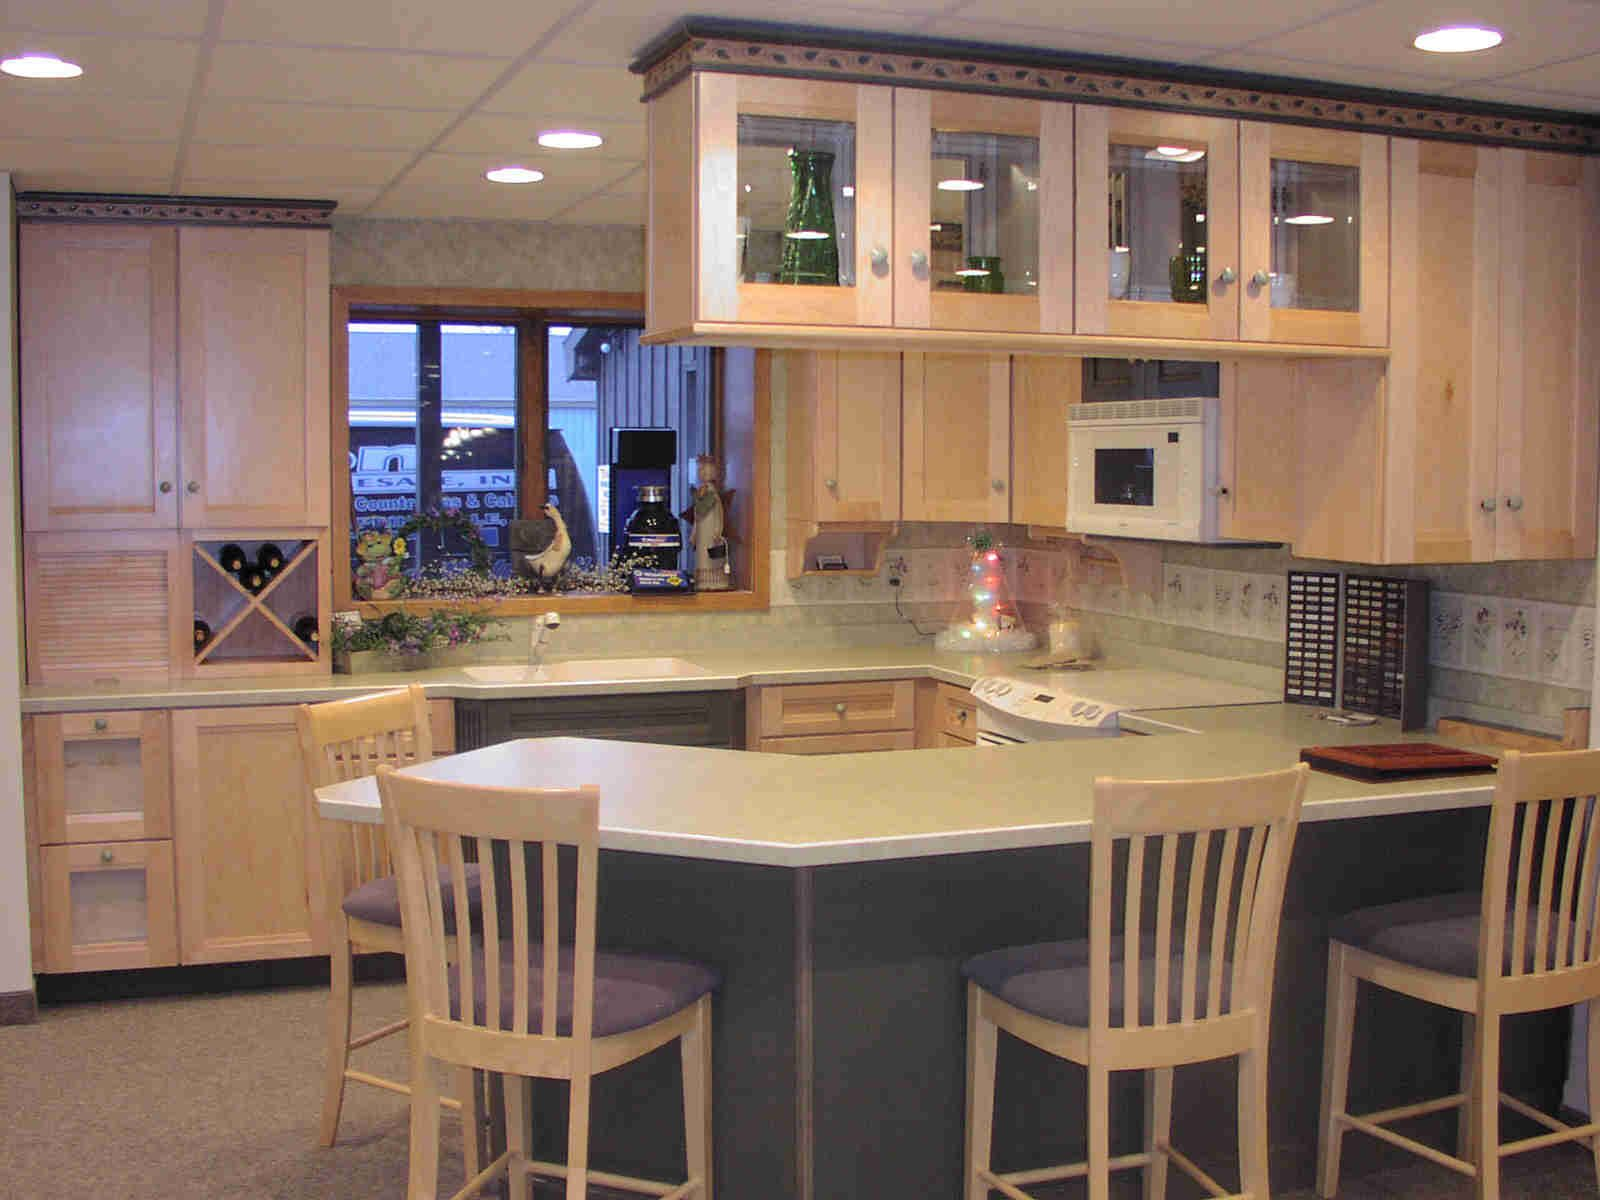 Kitchen Cabinet Hanging Hanging Kitchen Cabinets From Ceiling Kitchen Cabinet